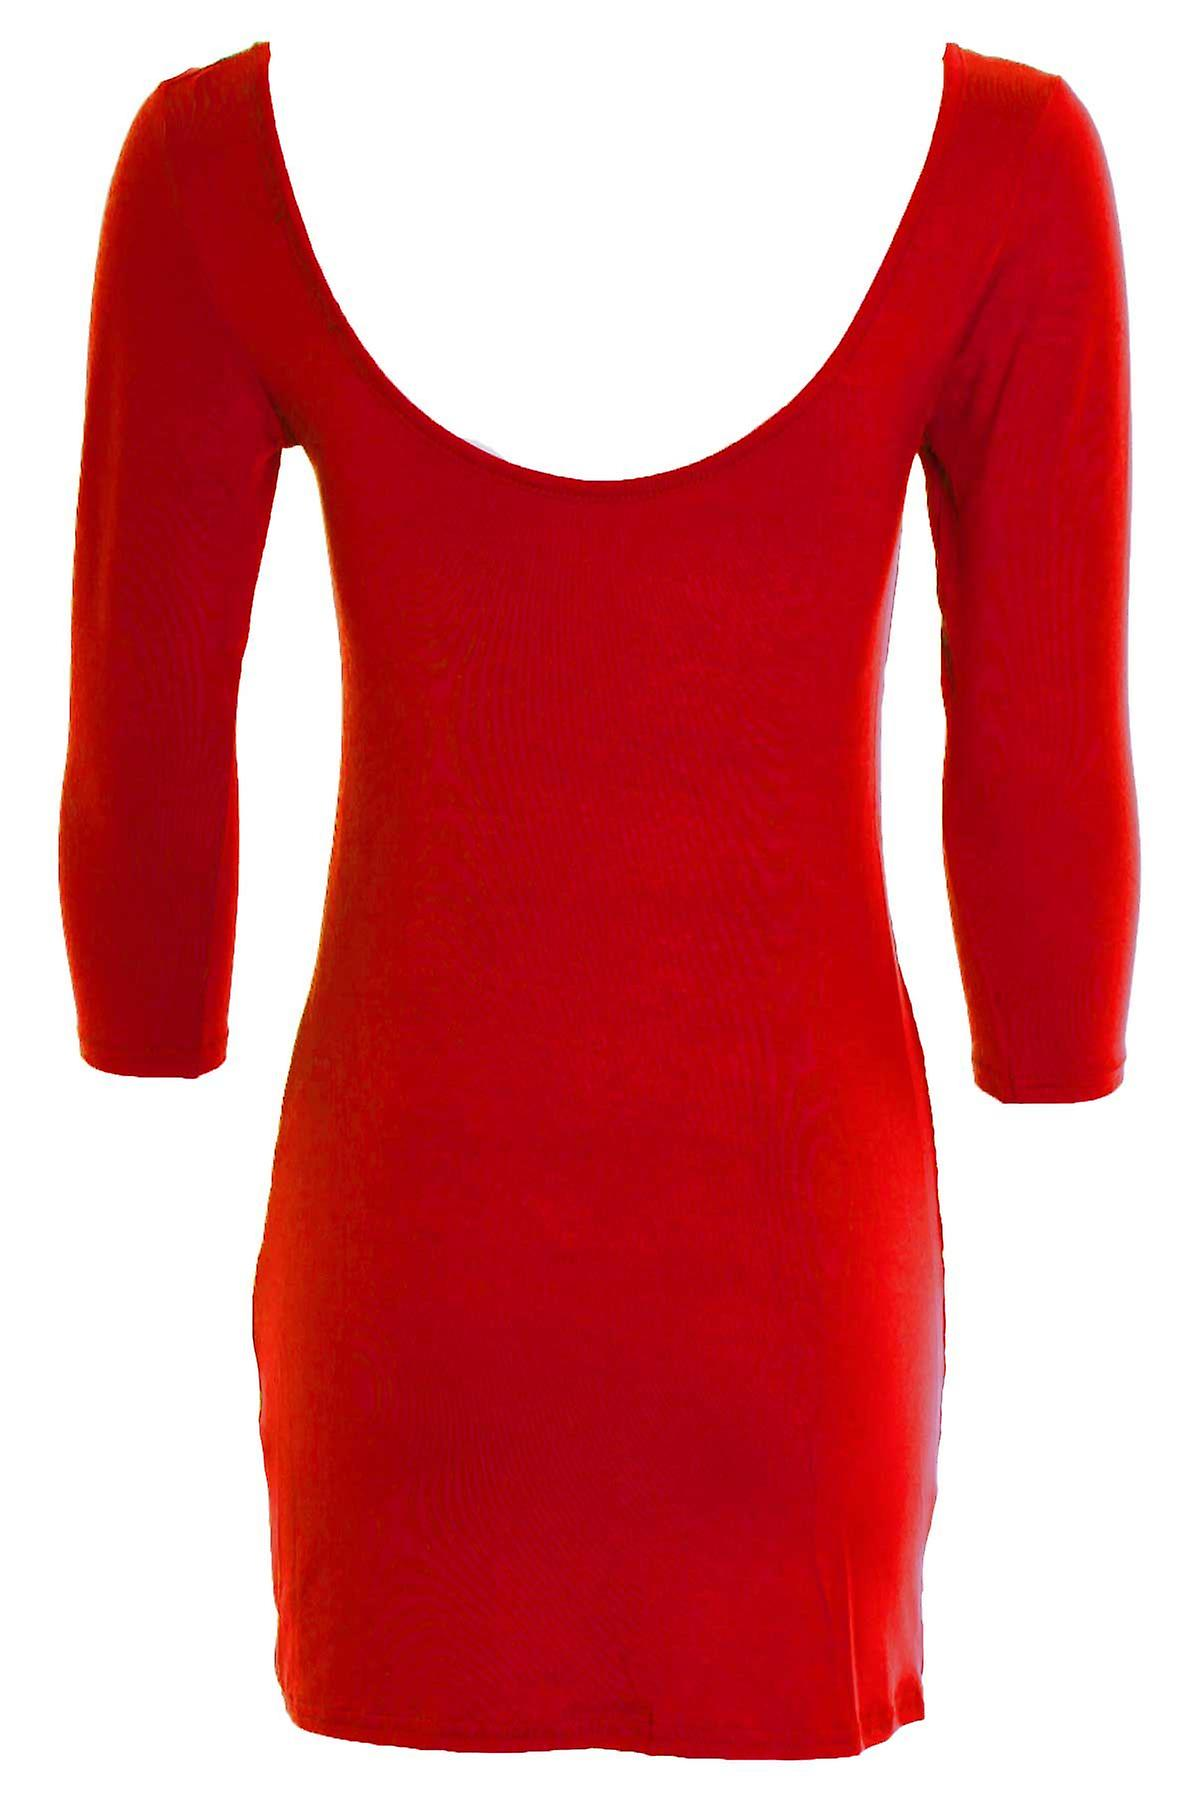 Women's 3/4 Sleeve Long Top Tunic T-Shirt Coloured Bodycon Ladies Dress